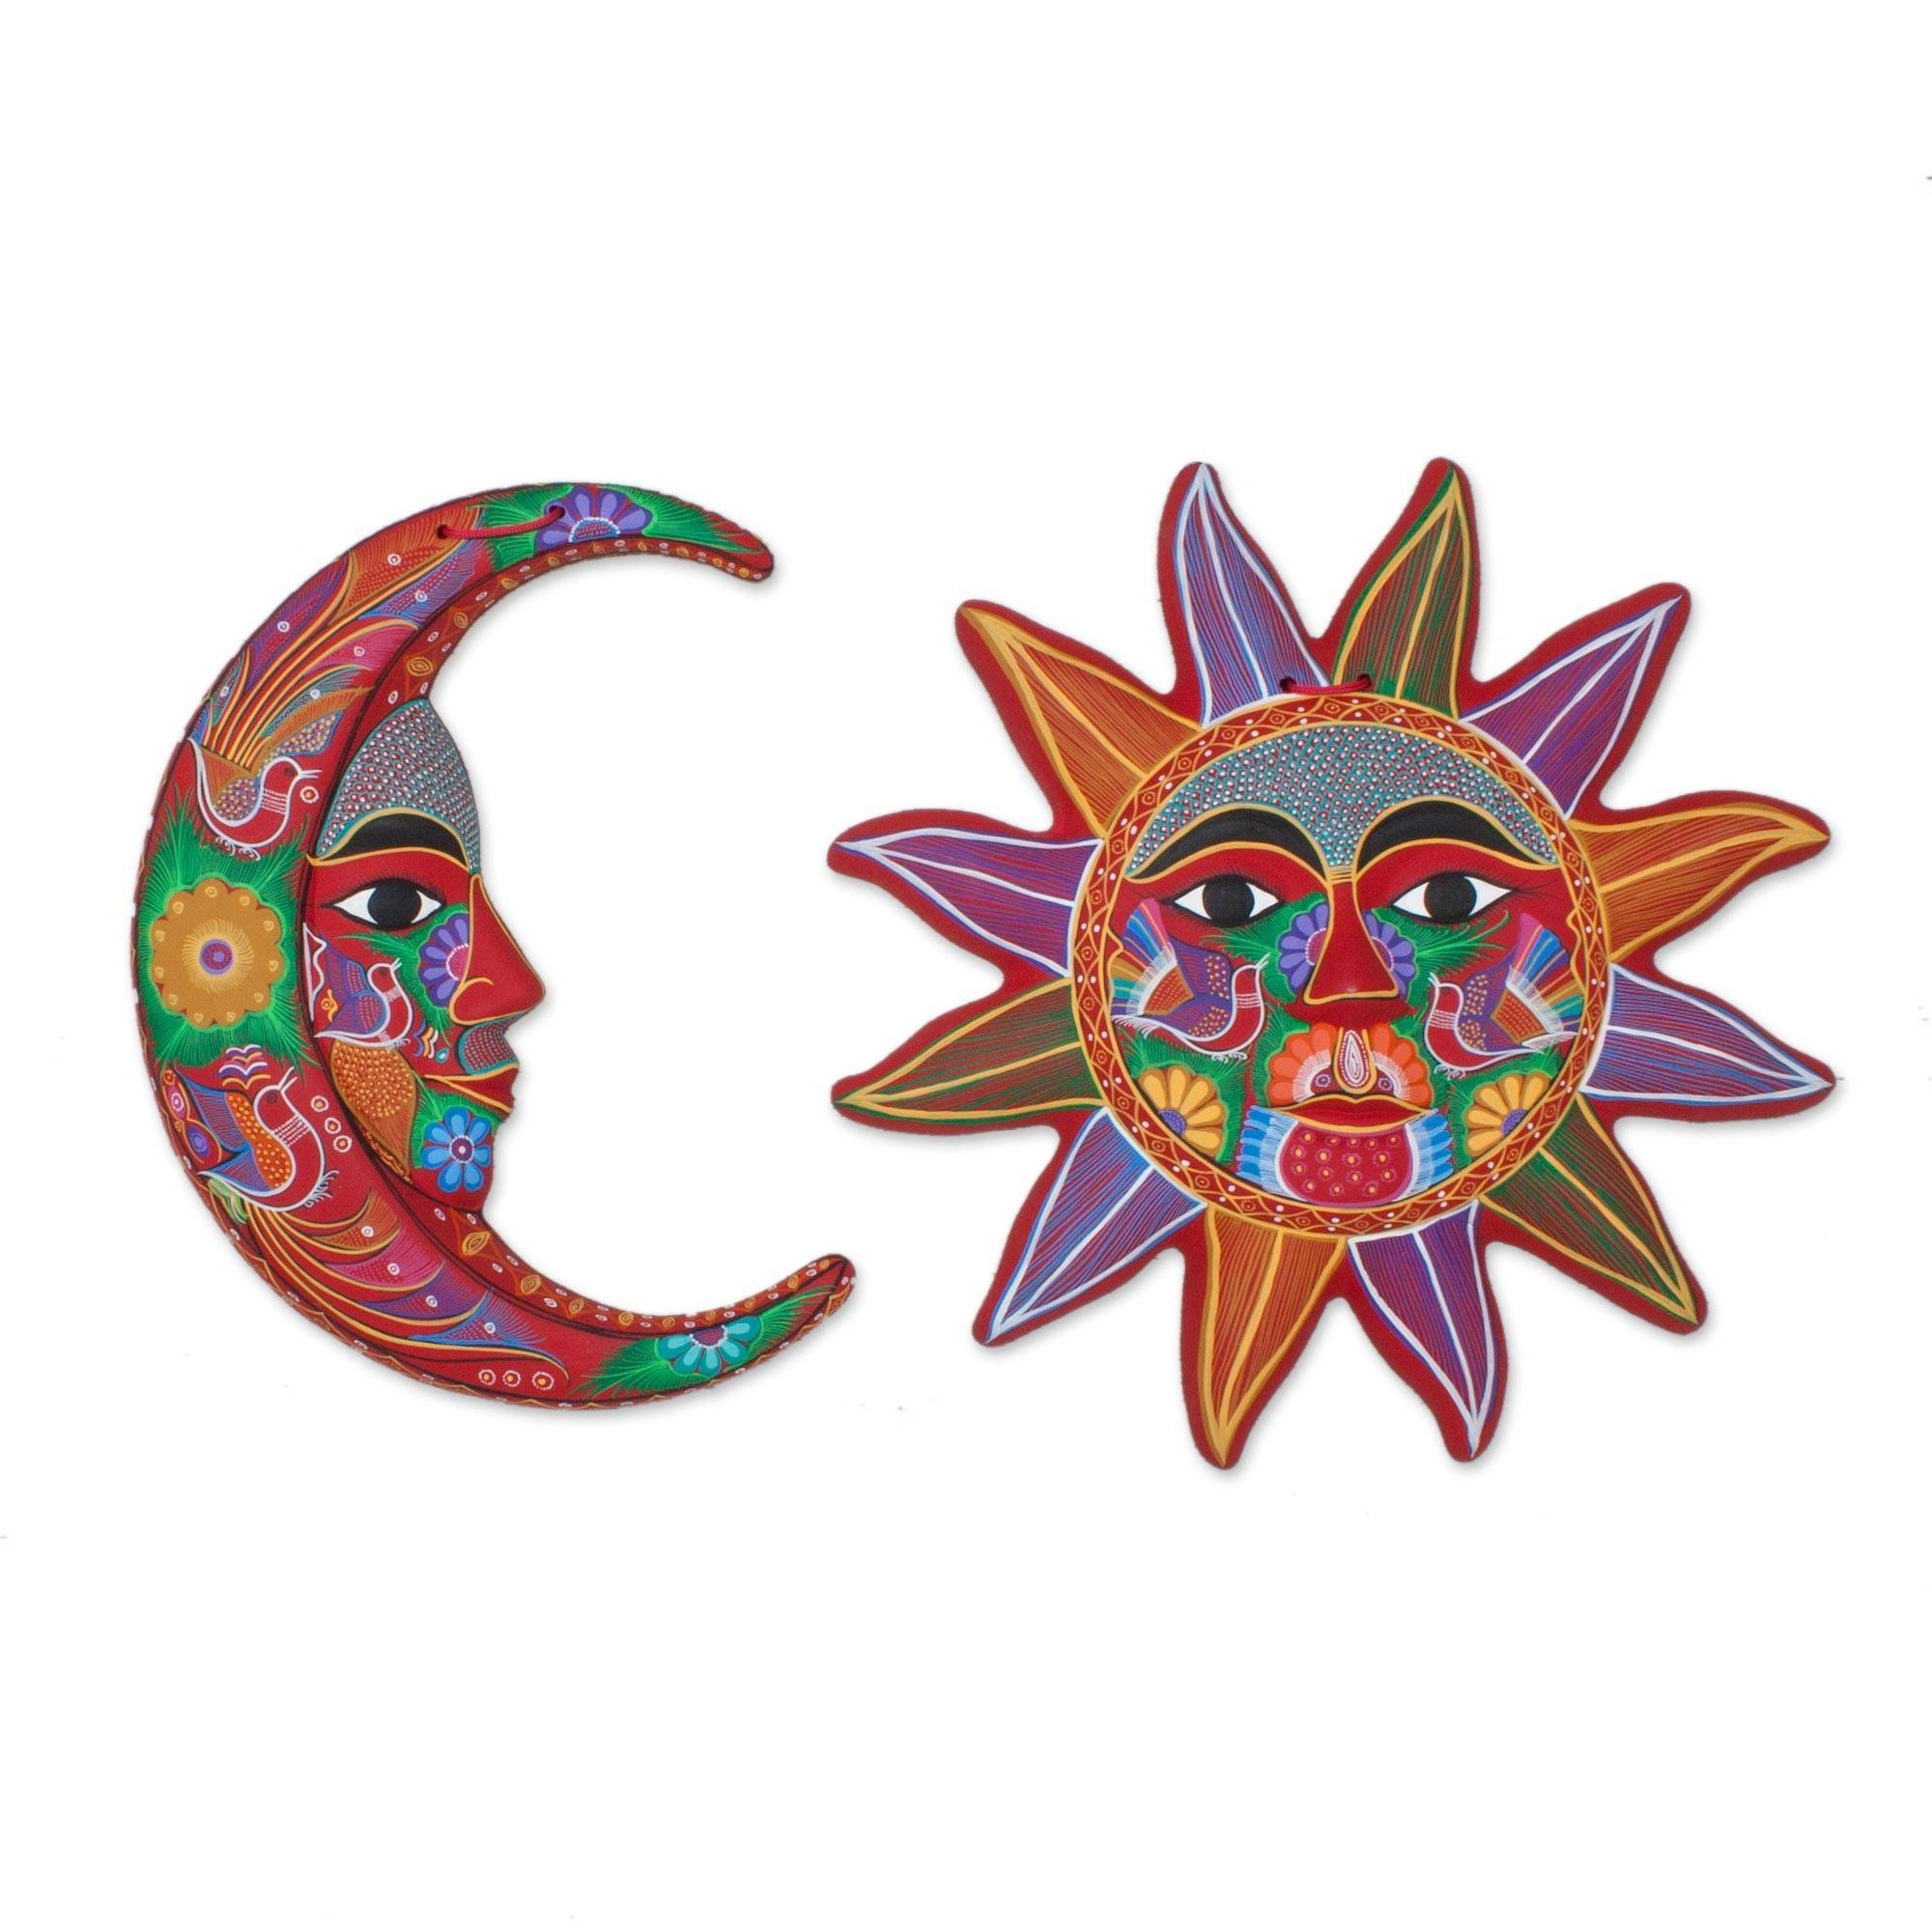 Fair Trade Sun And Moon Ceramic Wall Art From Mexico (pair Intended For Recent Sun And Moon Metal Wall Art (View 10 of 20)